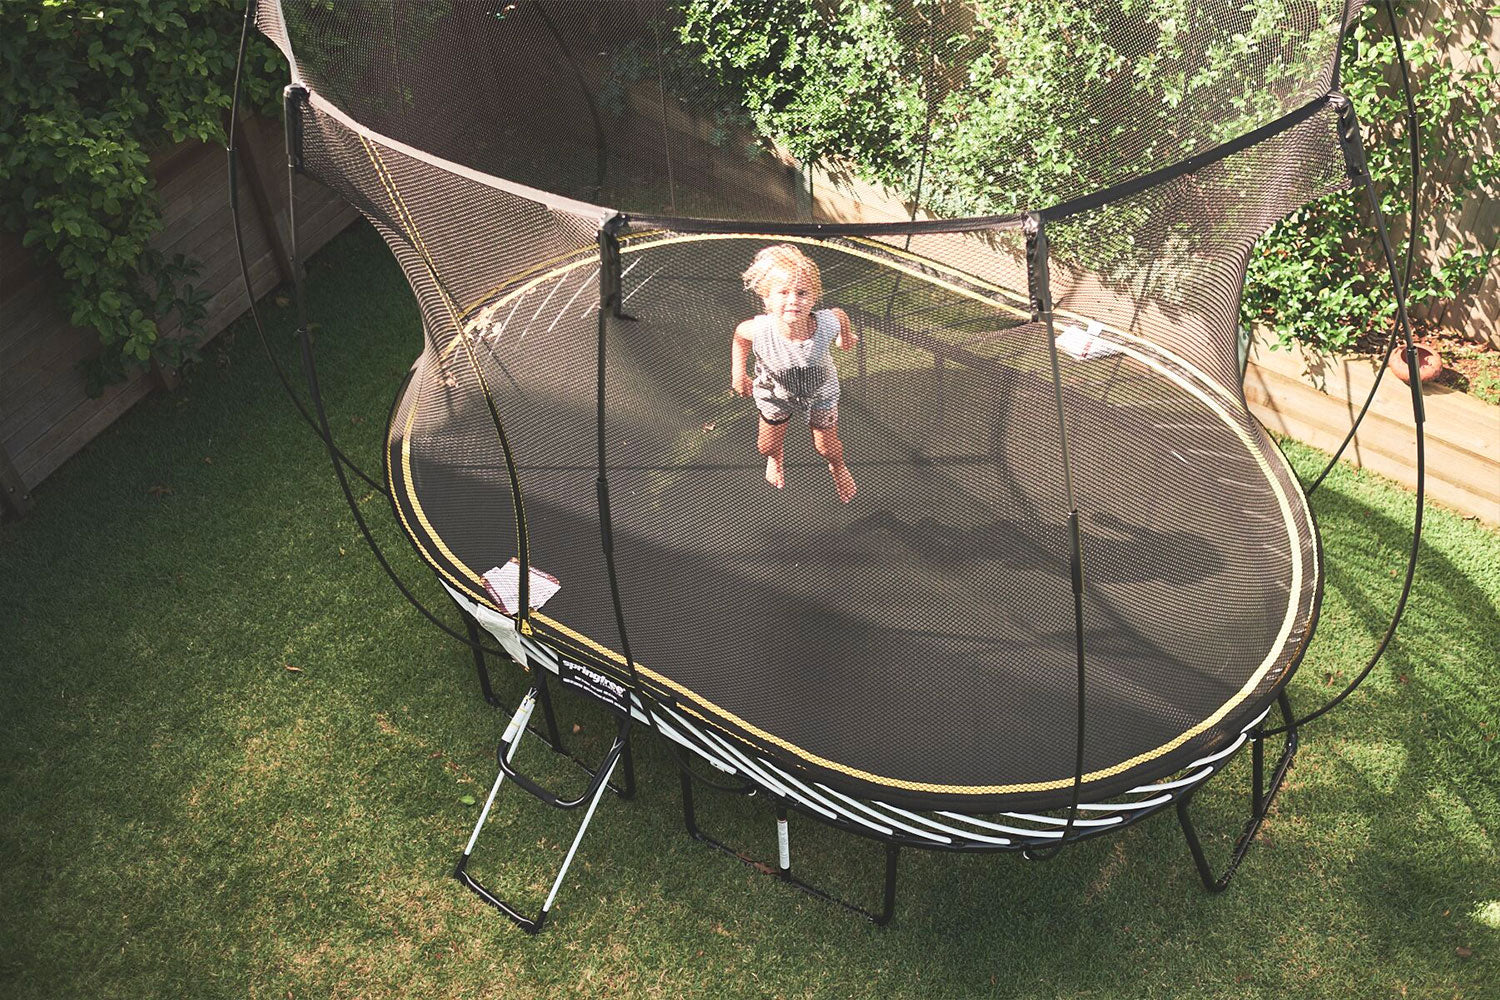 Springfree trampoline seen from above